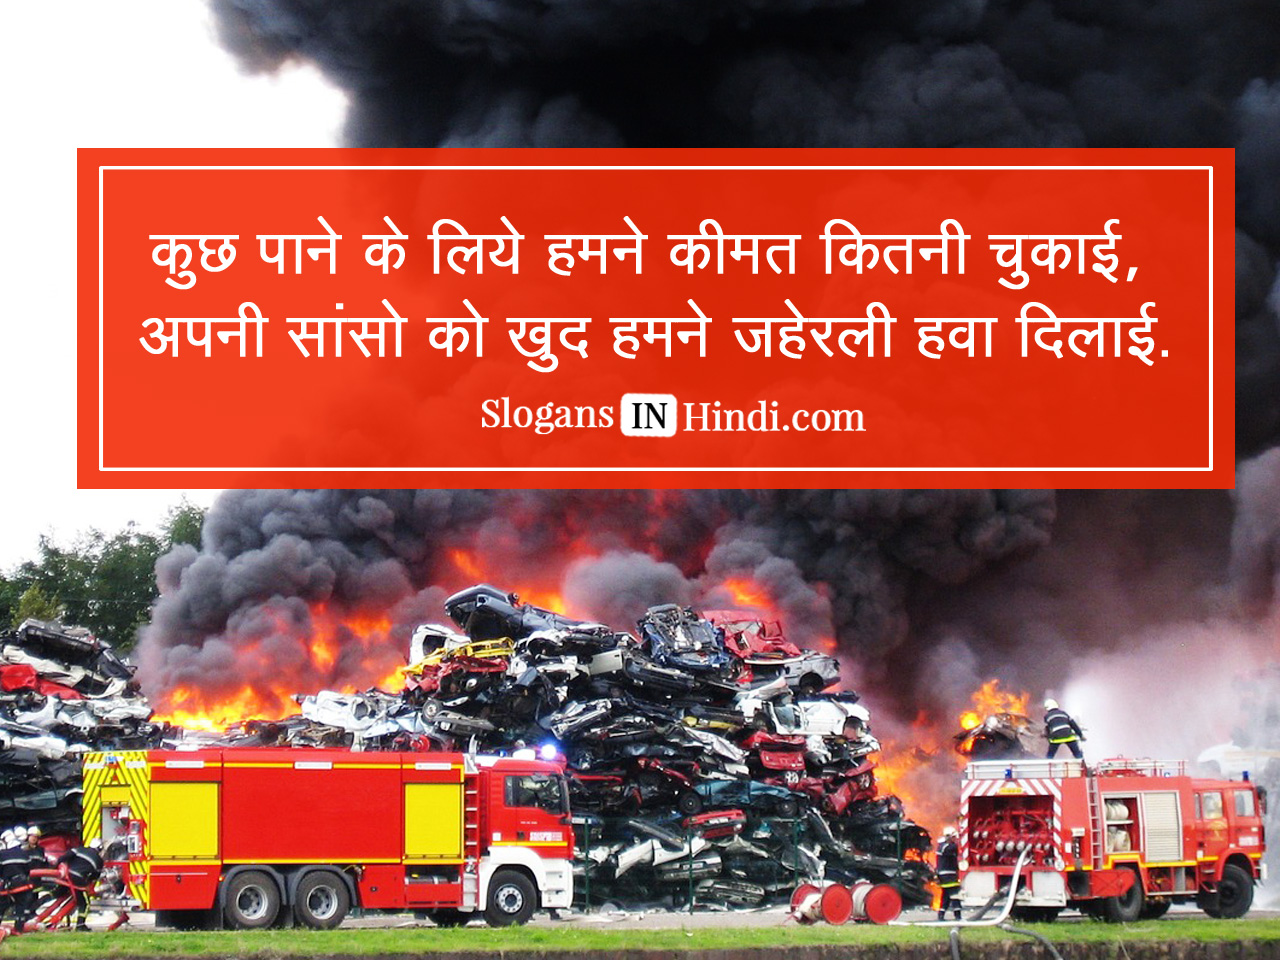 hame a5_Slogans About Air Pollution In Hindi